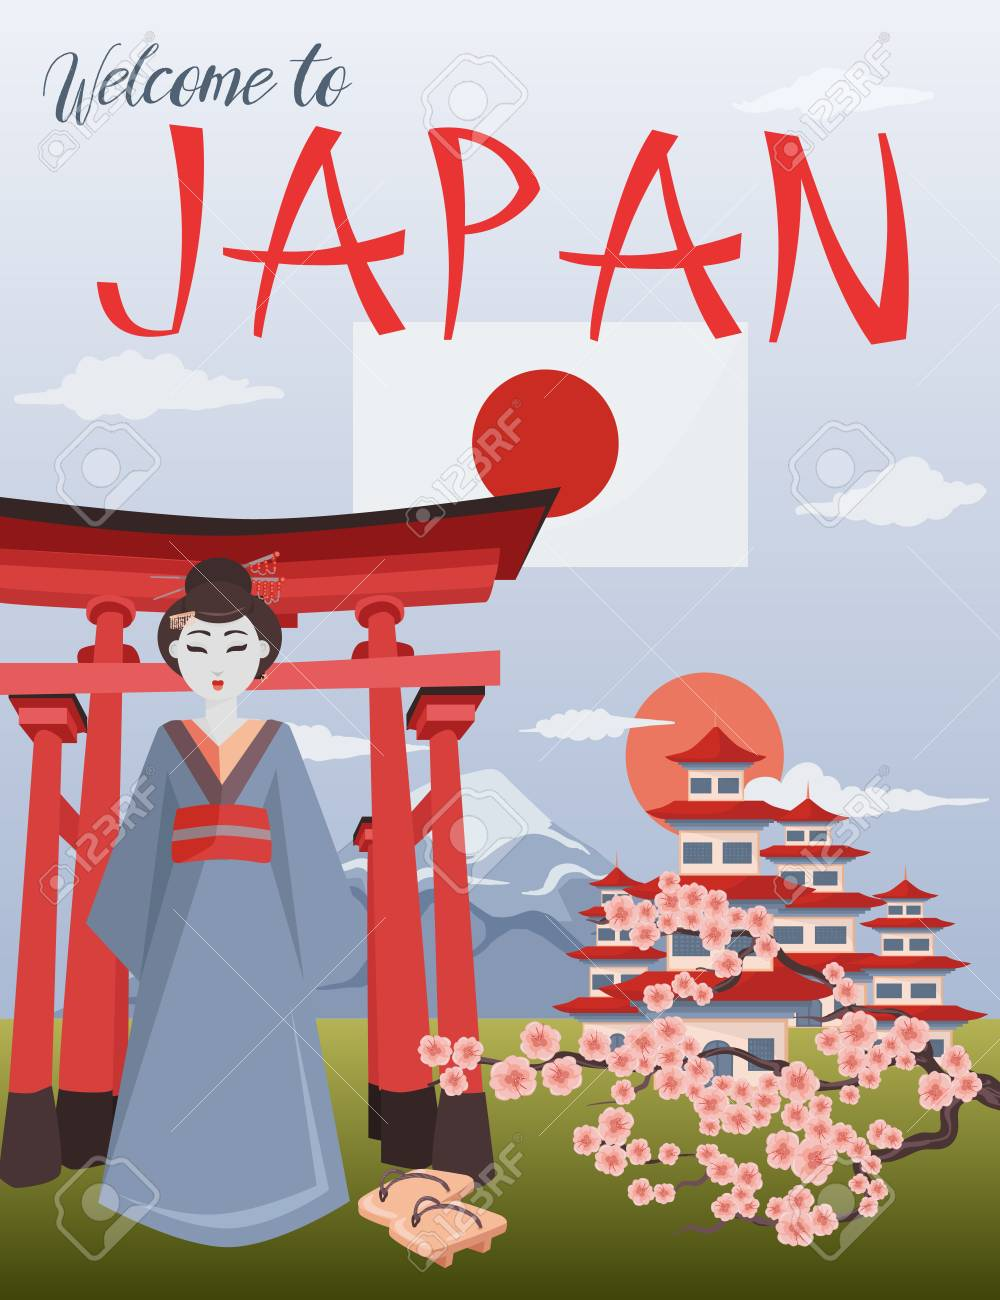 Welcome To Japan Poster Japanese Symbols Vector Illustration Royalty Free Cliparts Vectors And Stock Illustration Image 114818880